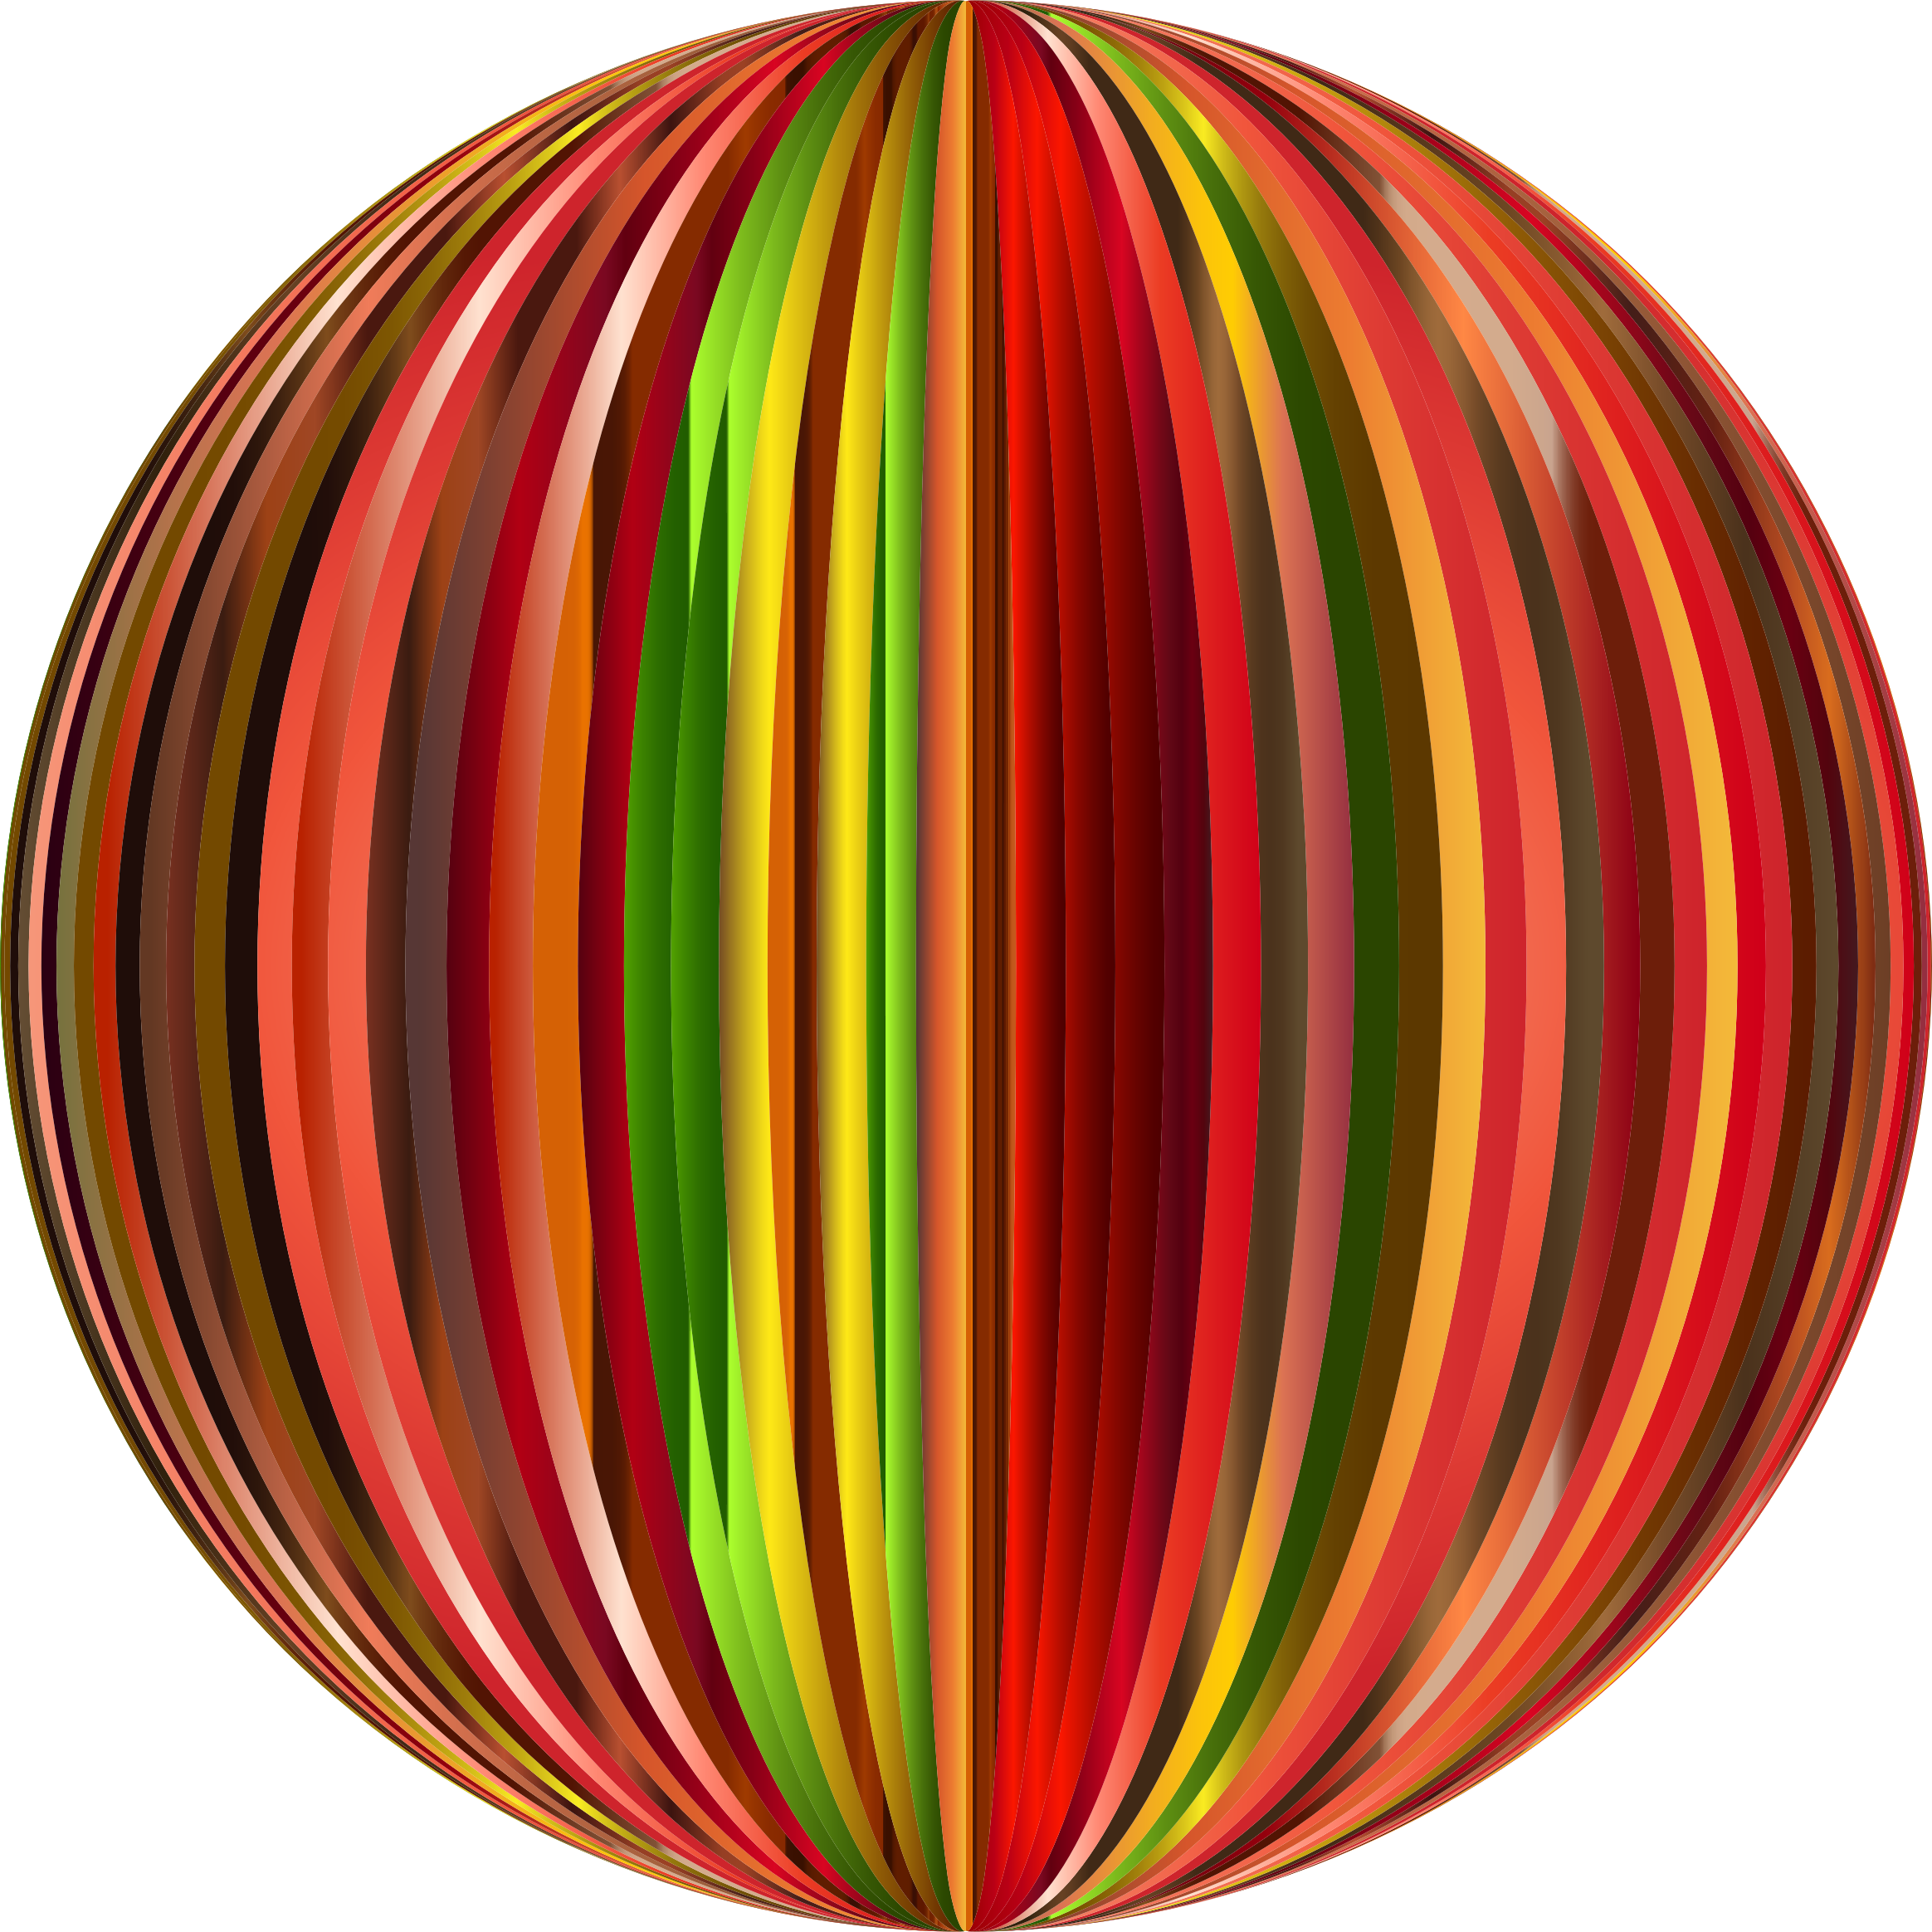 Vibrant Sphere 7 by GDJ